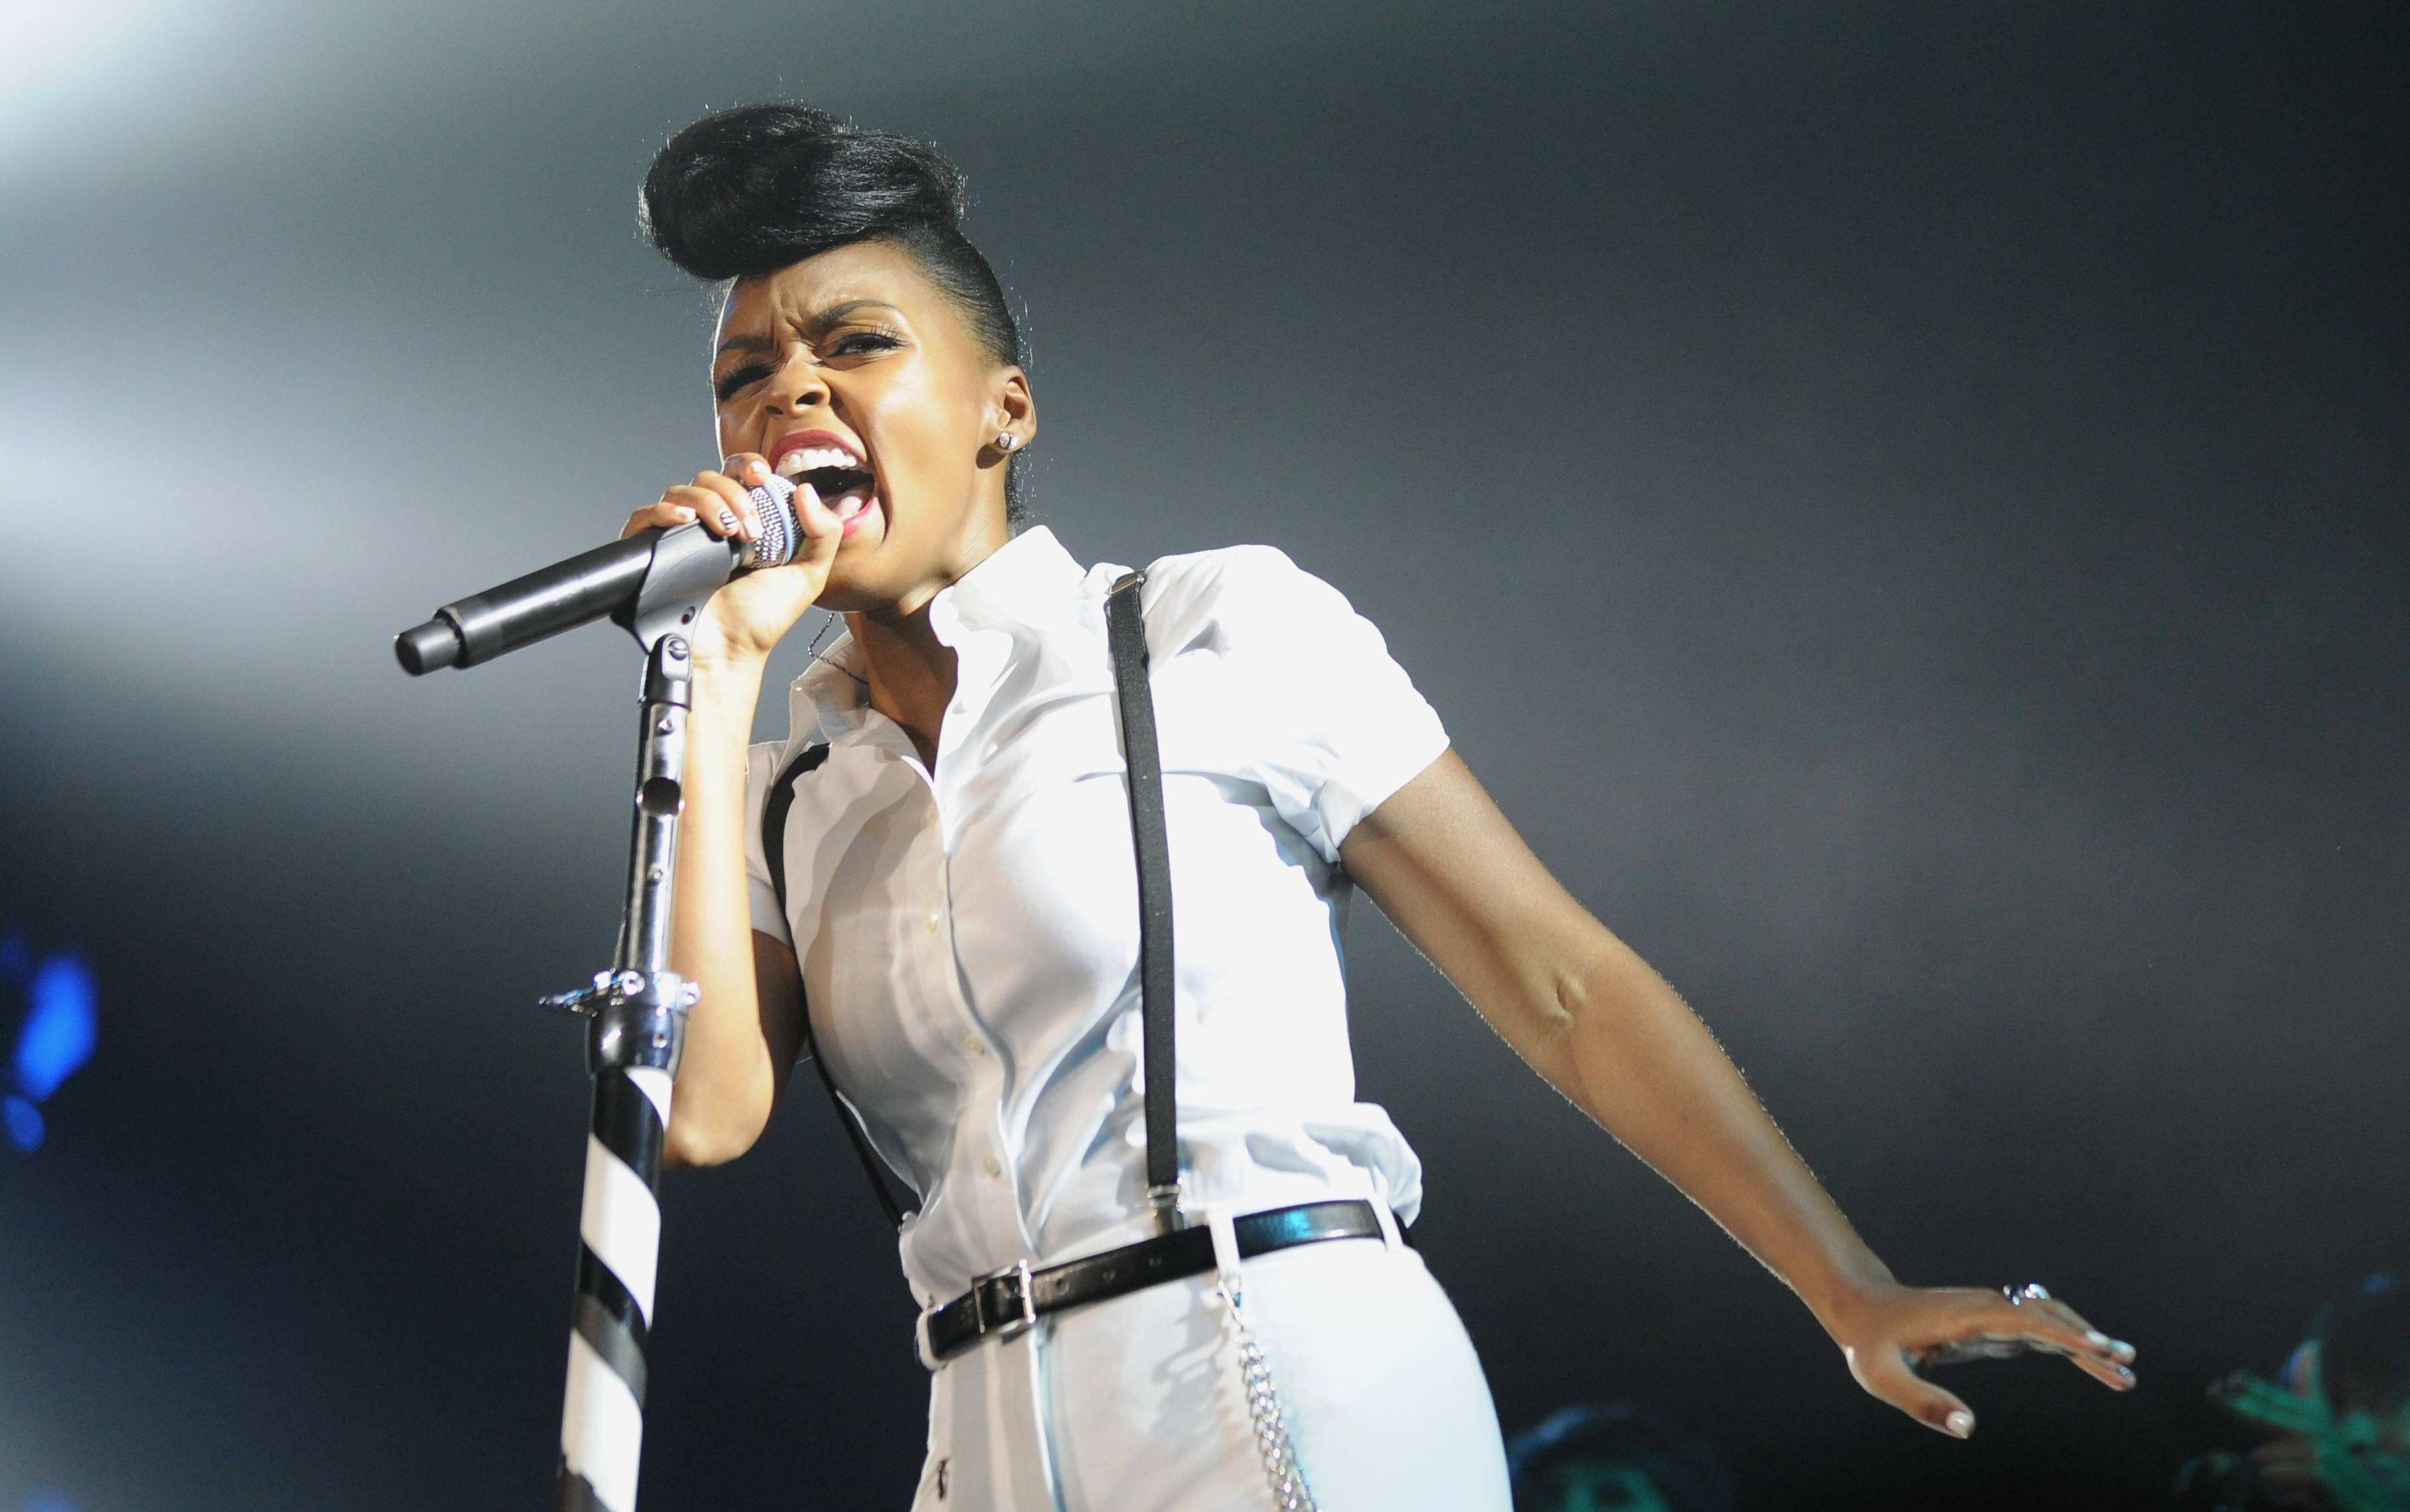 Janelle Monae will be one of the headliners at Taste of Chicago this summer.